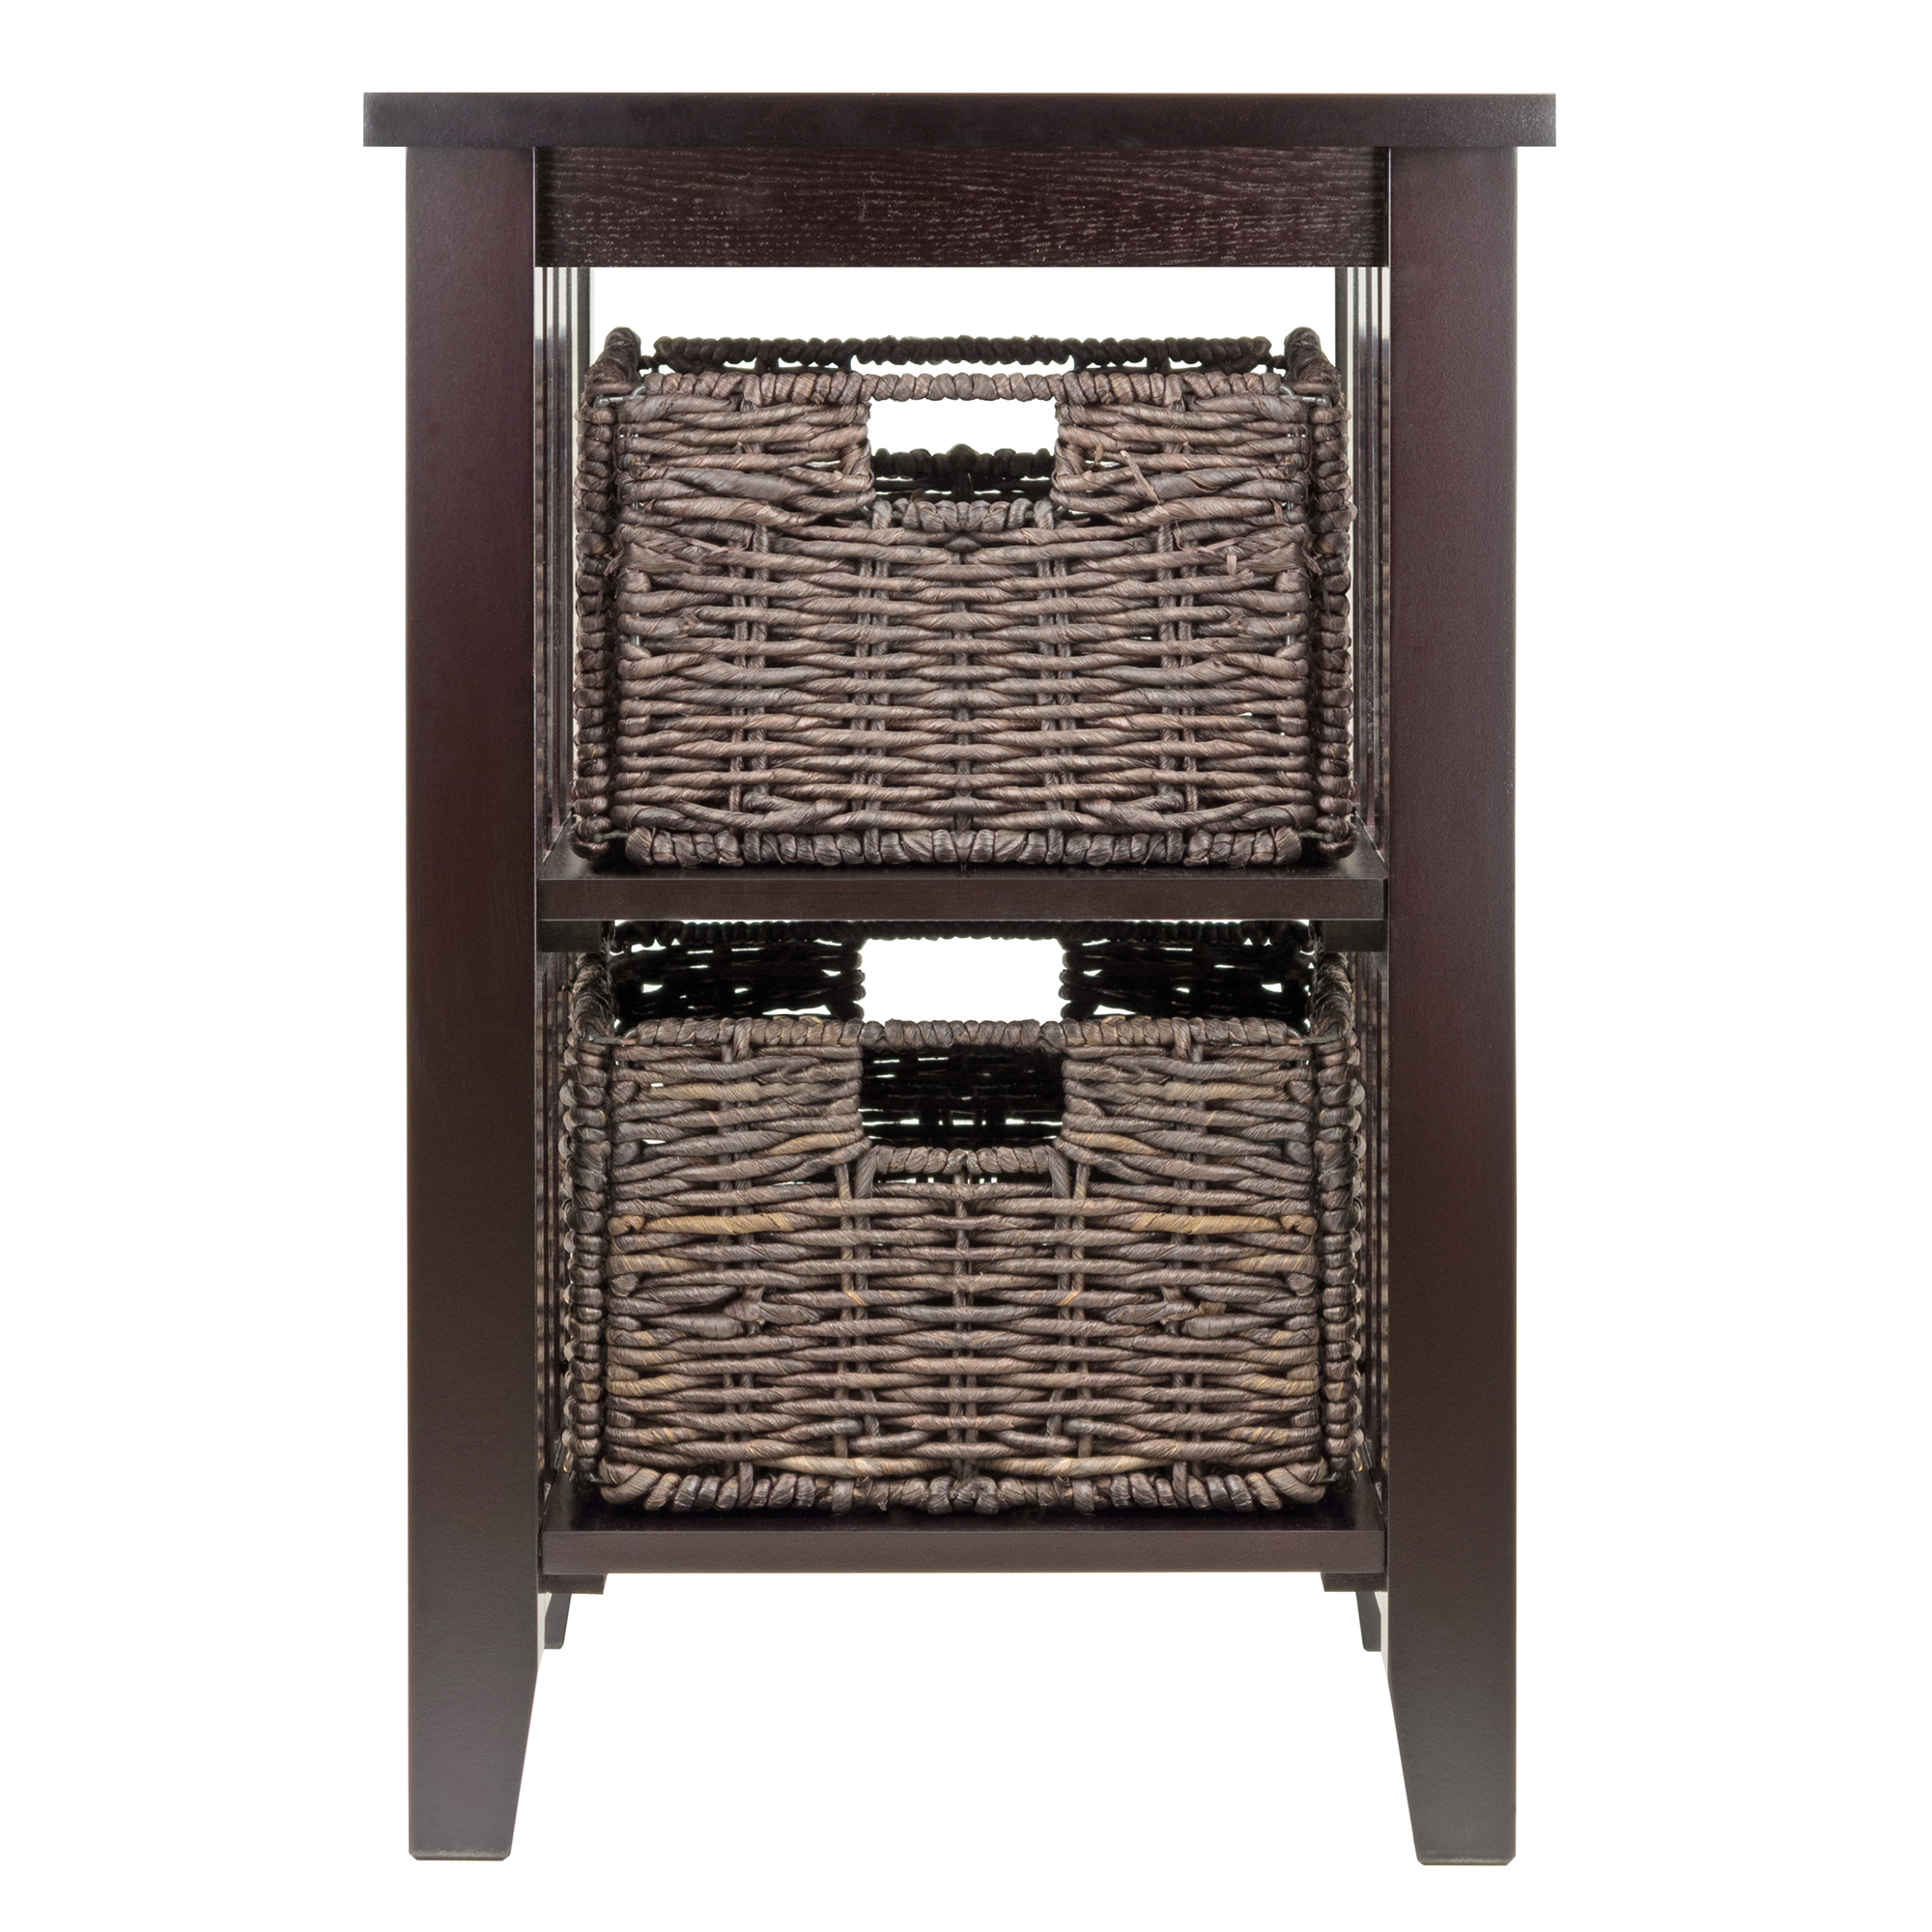 winsome wood morris accent table with storage baskets espresso finish outdoor coffee cover small round occasional black sideboard unfinished dining legs wicker porch furniture oak